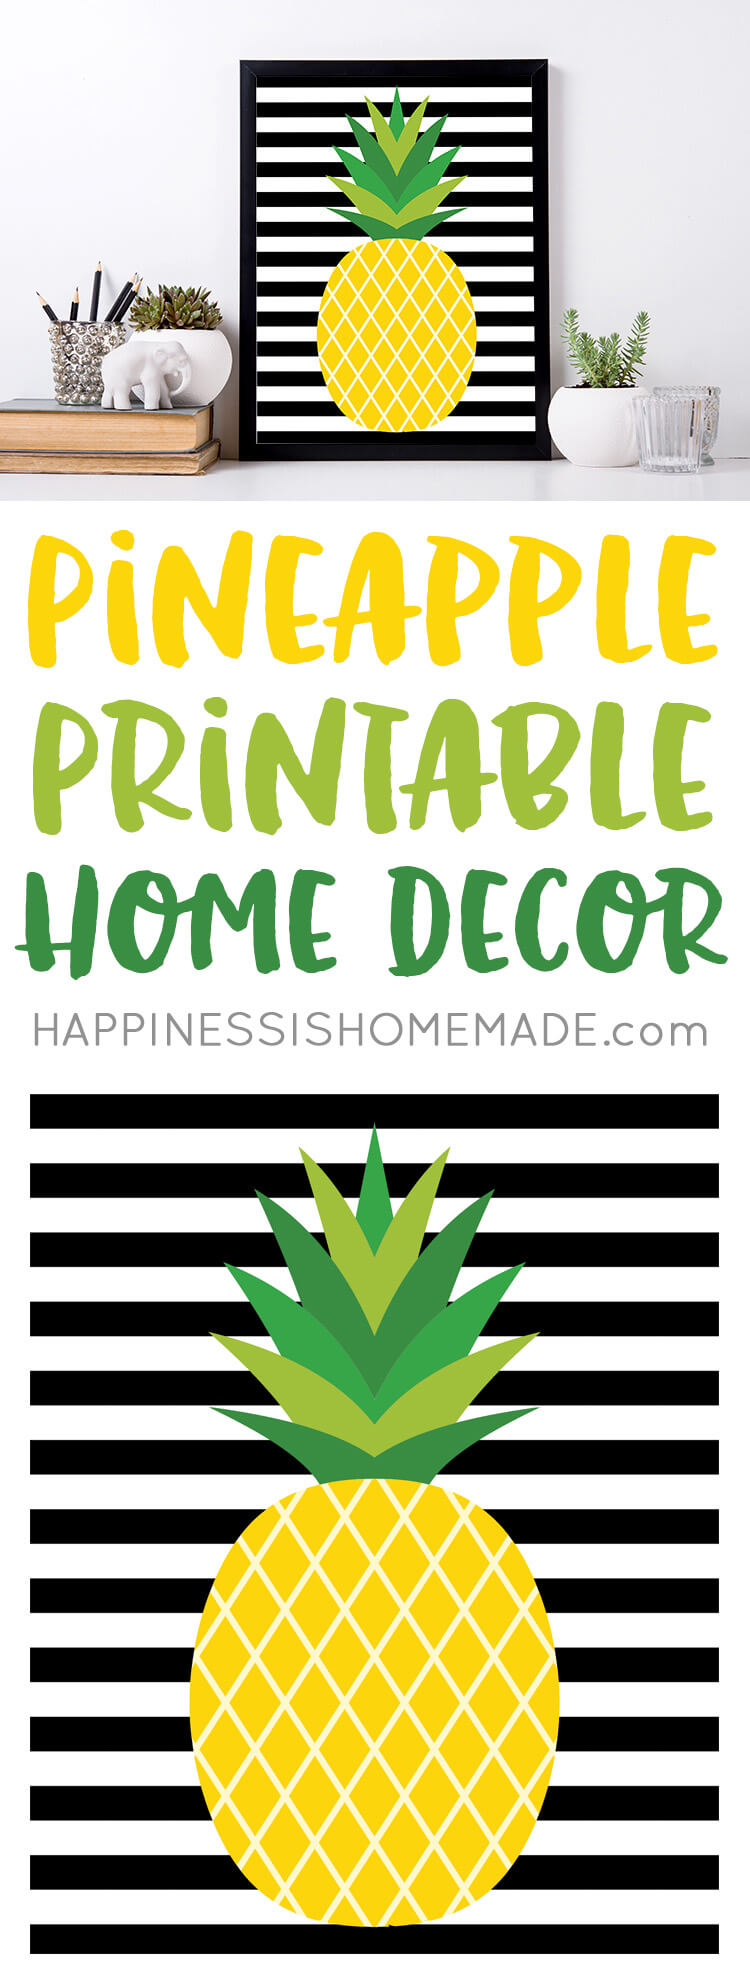 """""""If you were a fruit, you'd be a fine-apple!"""" These cute pineapple printables will make a fantastic and stylish addition to your home decor! Bonus pineapple gift tags too!"""